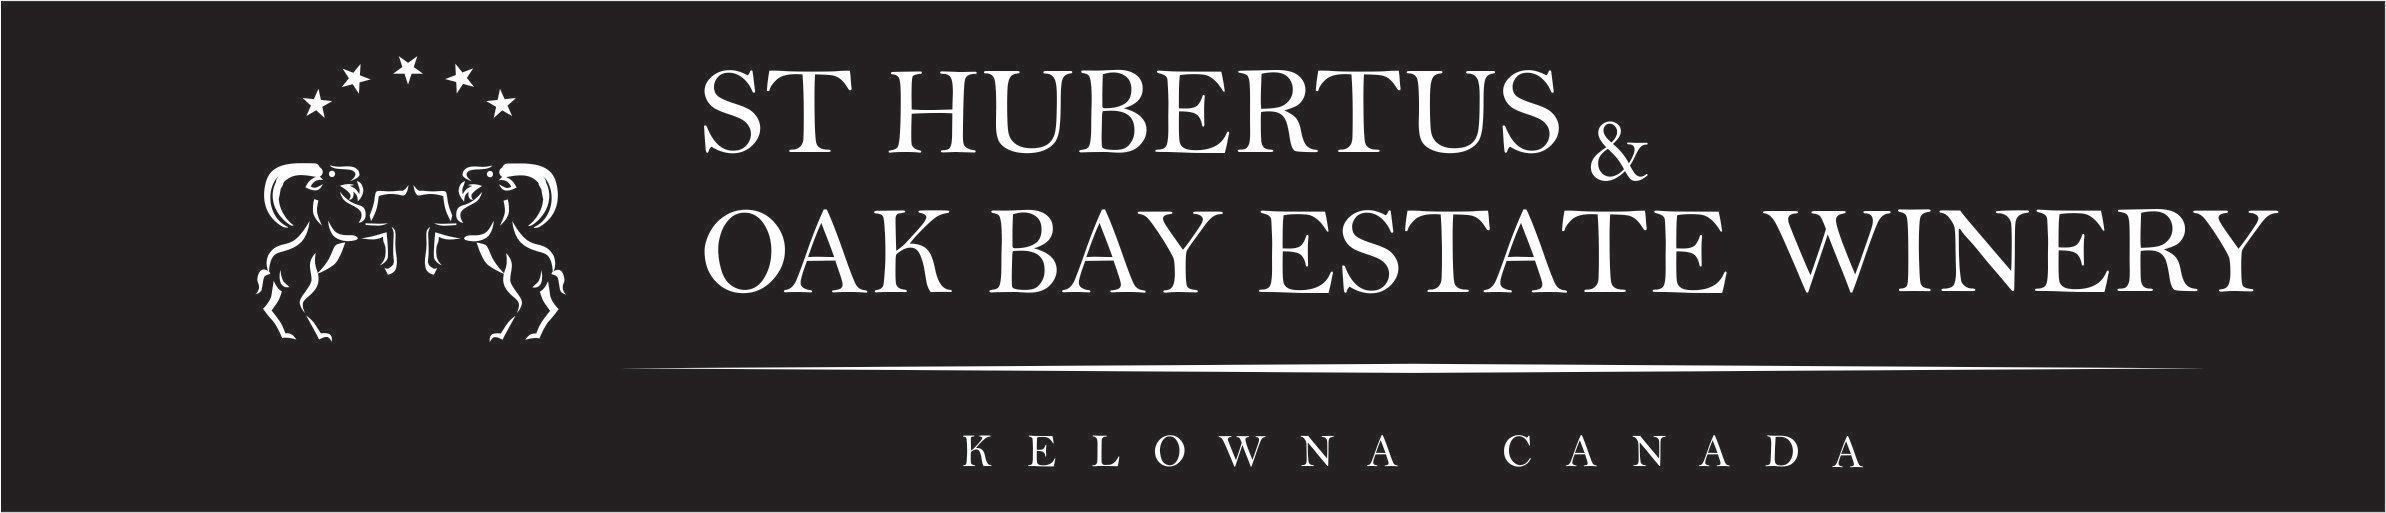 St. Hubertus & Oak Bay Estate Winery Ltd